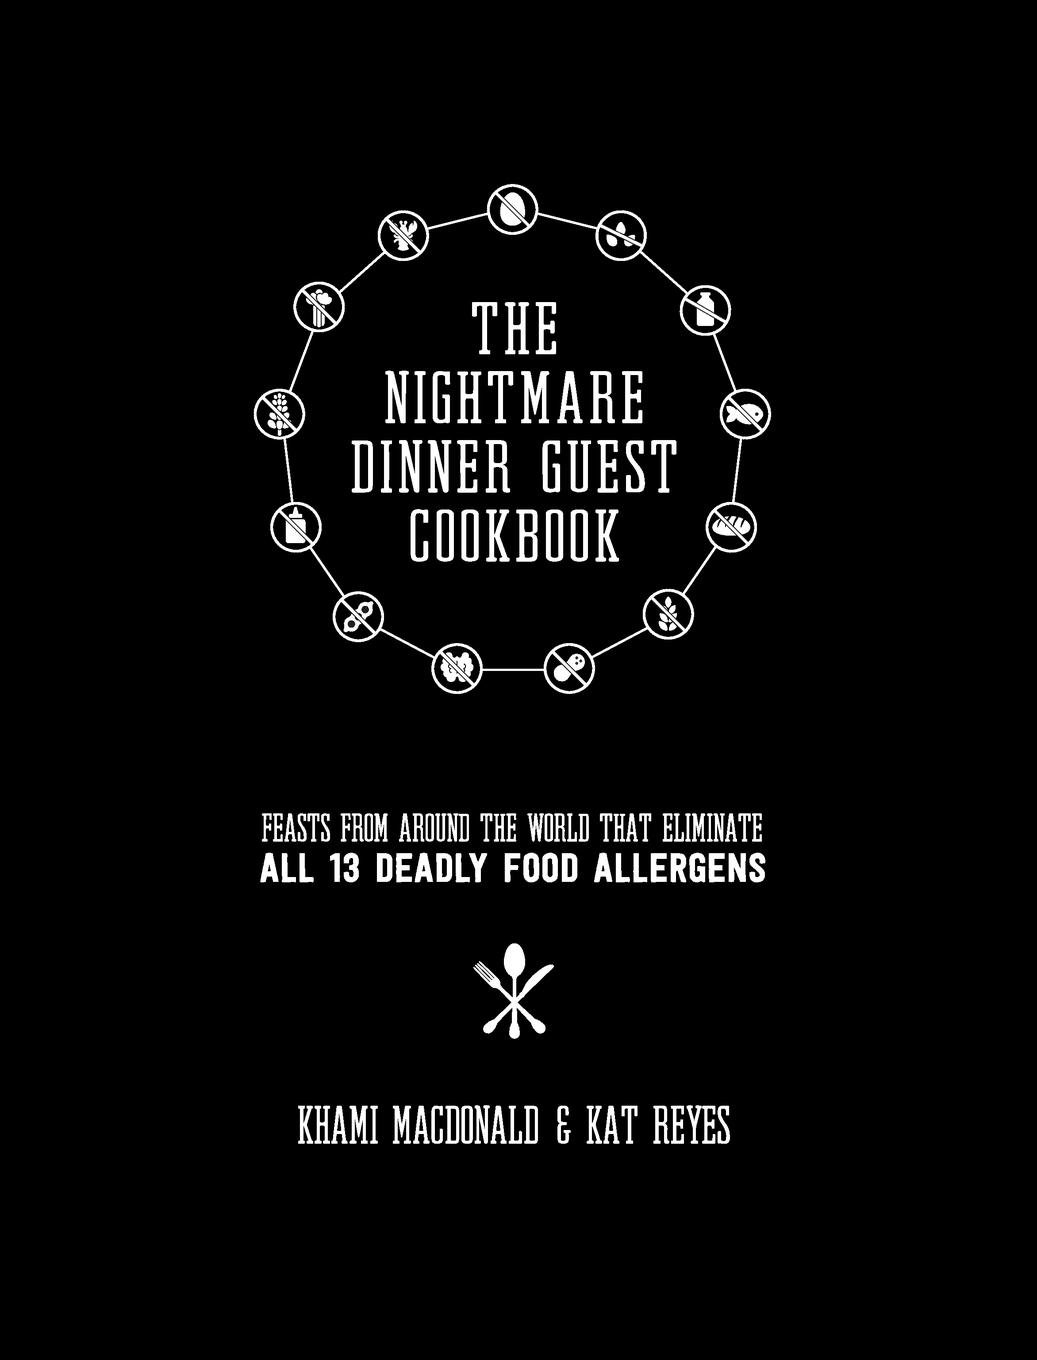 The Nightmare Dinner Guest Cookbook: Feasts from around the world that eliminate all 13 deadly allergens (Series 1) by Nightmare Dinner Guest